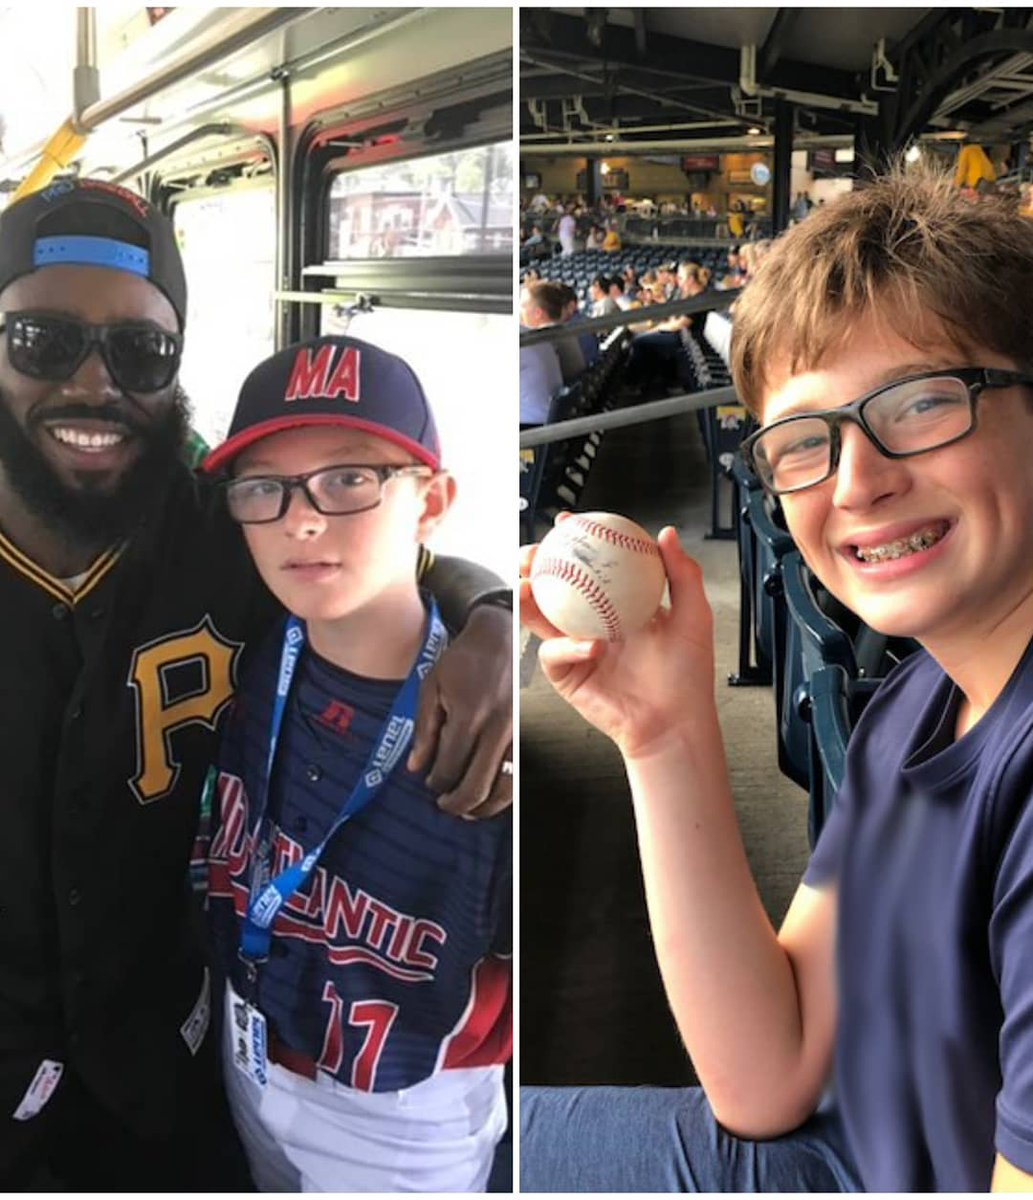 #LittleLeagueClassic ☑ @Pirates Game ☑ @jhay_da_man knows how to make this Little Leaguer's day.